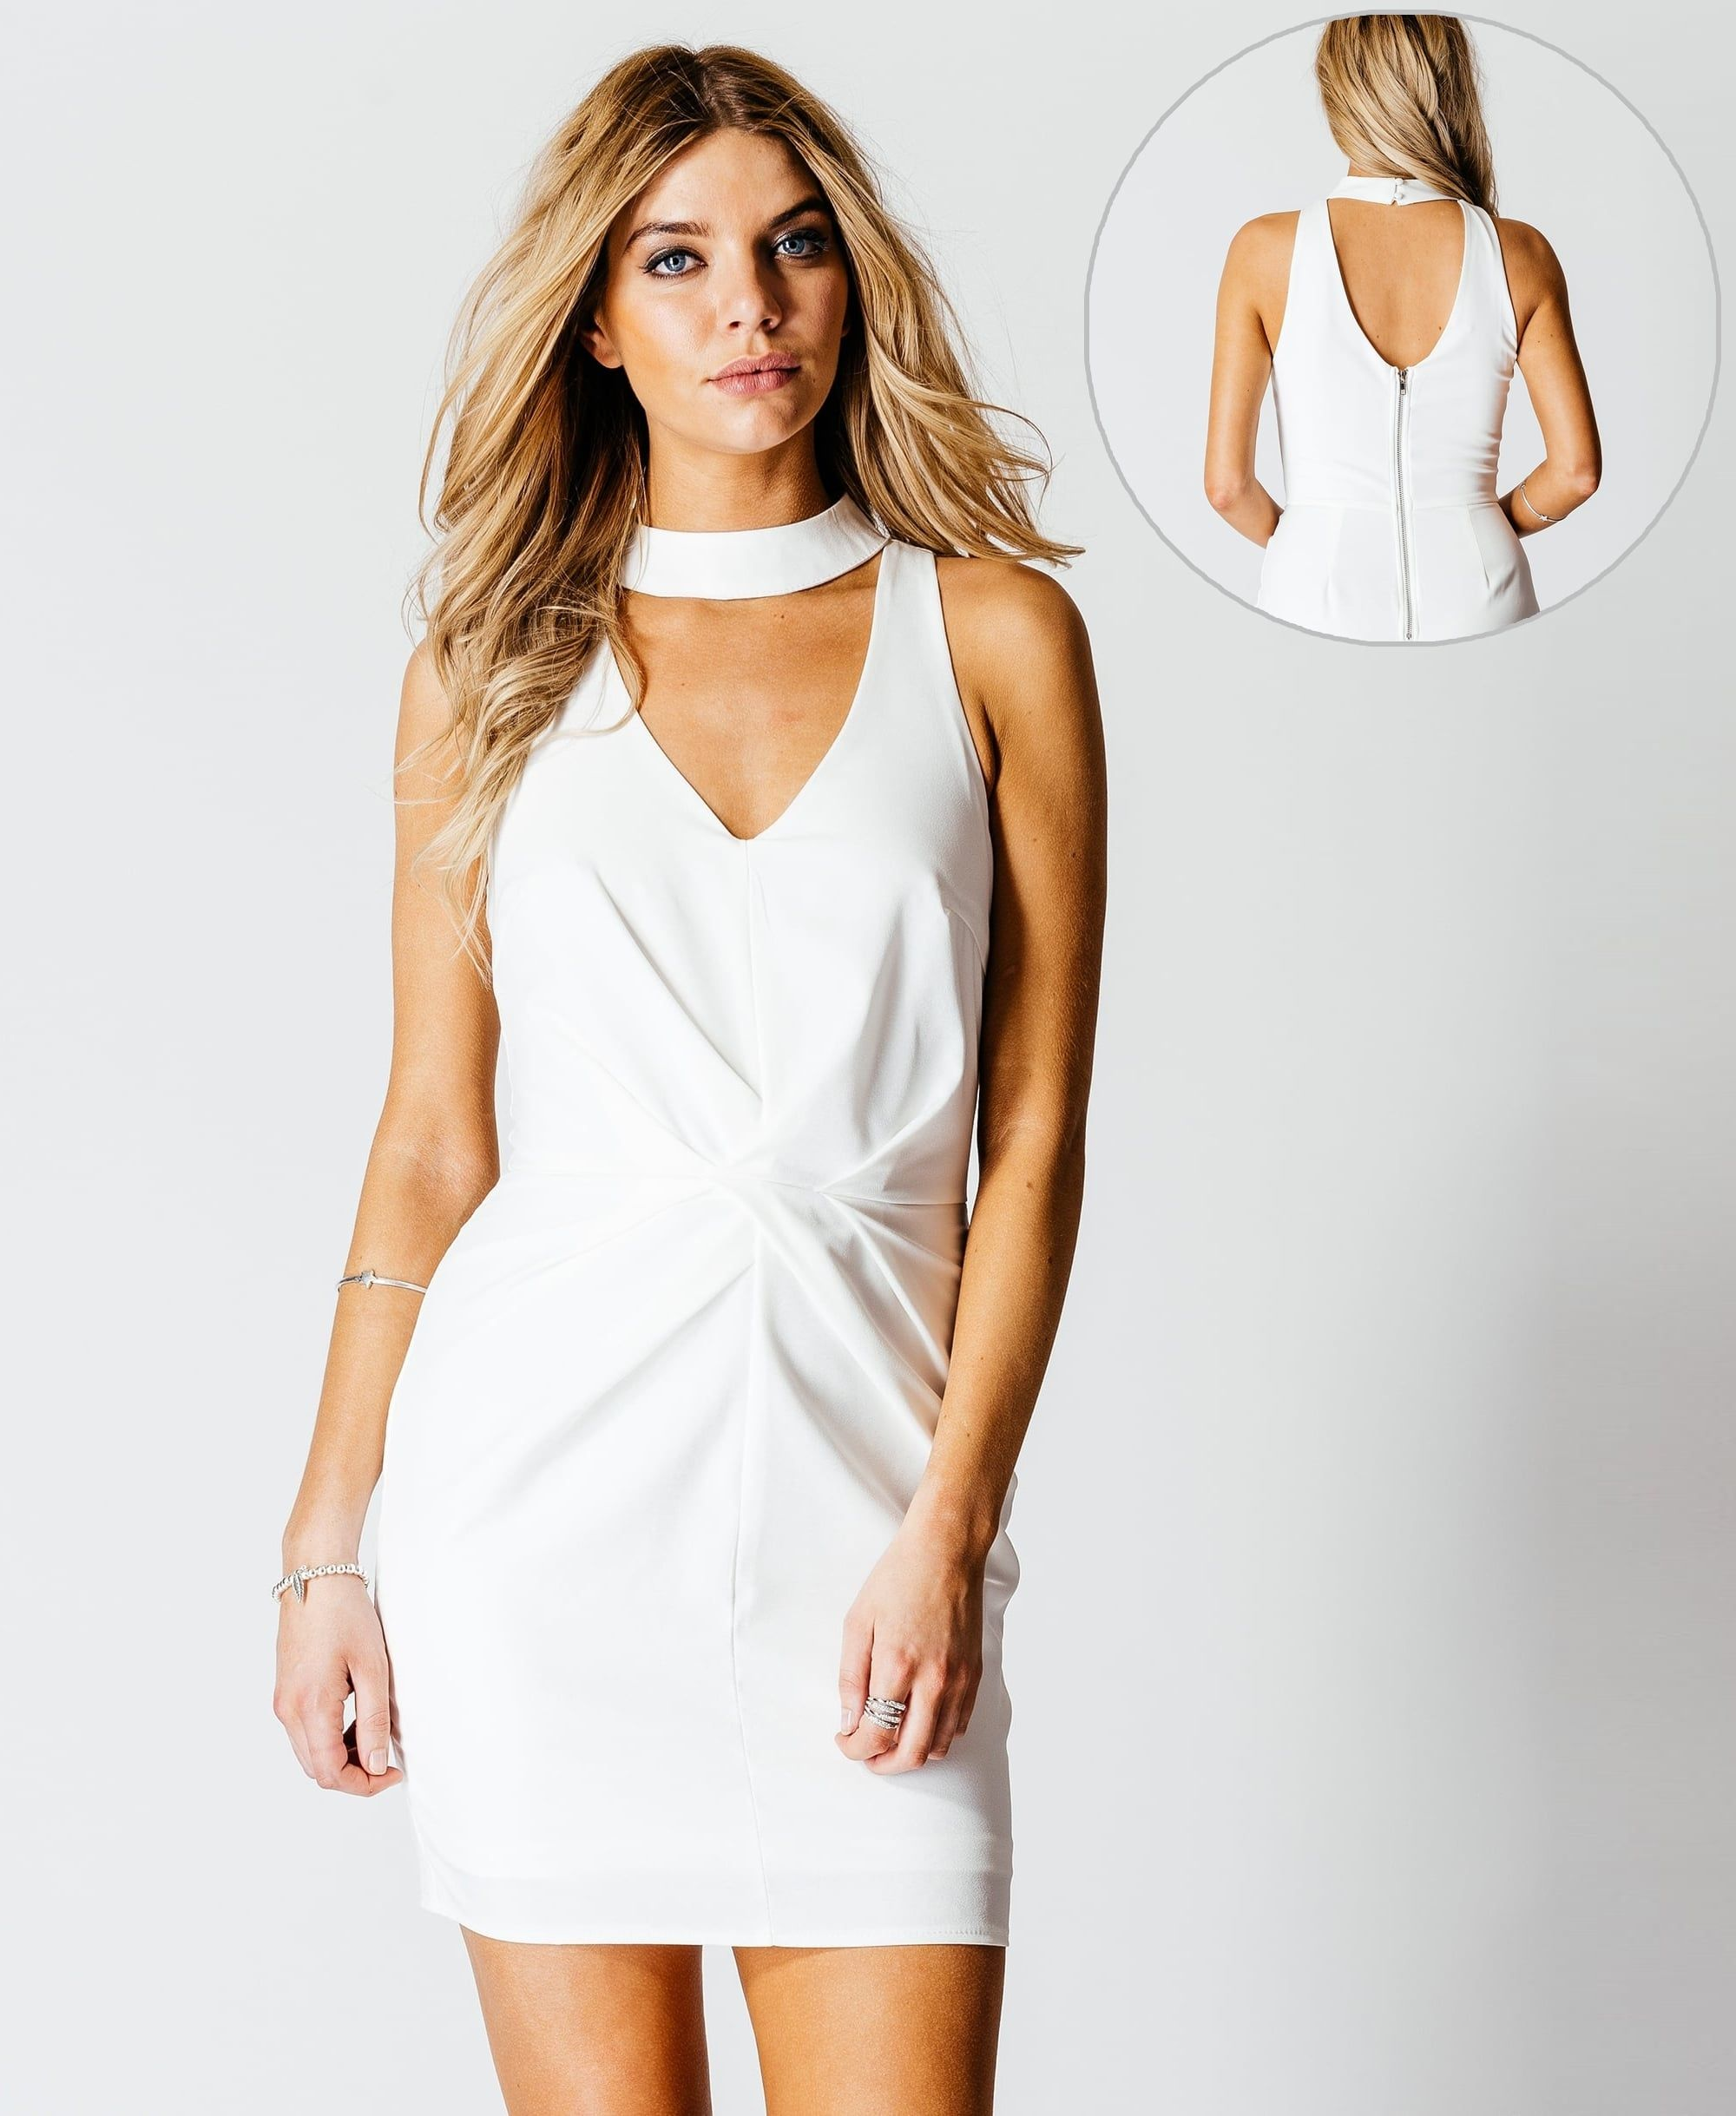 Details about White Choker DRESS Ladies NEW Short mini